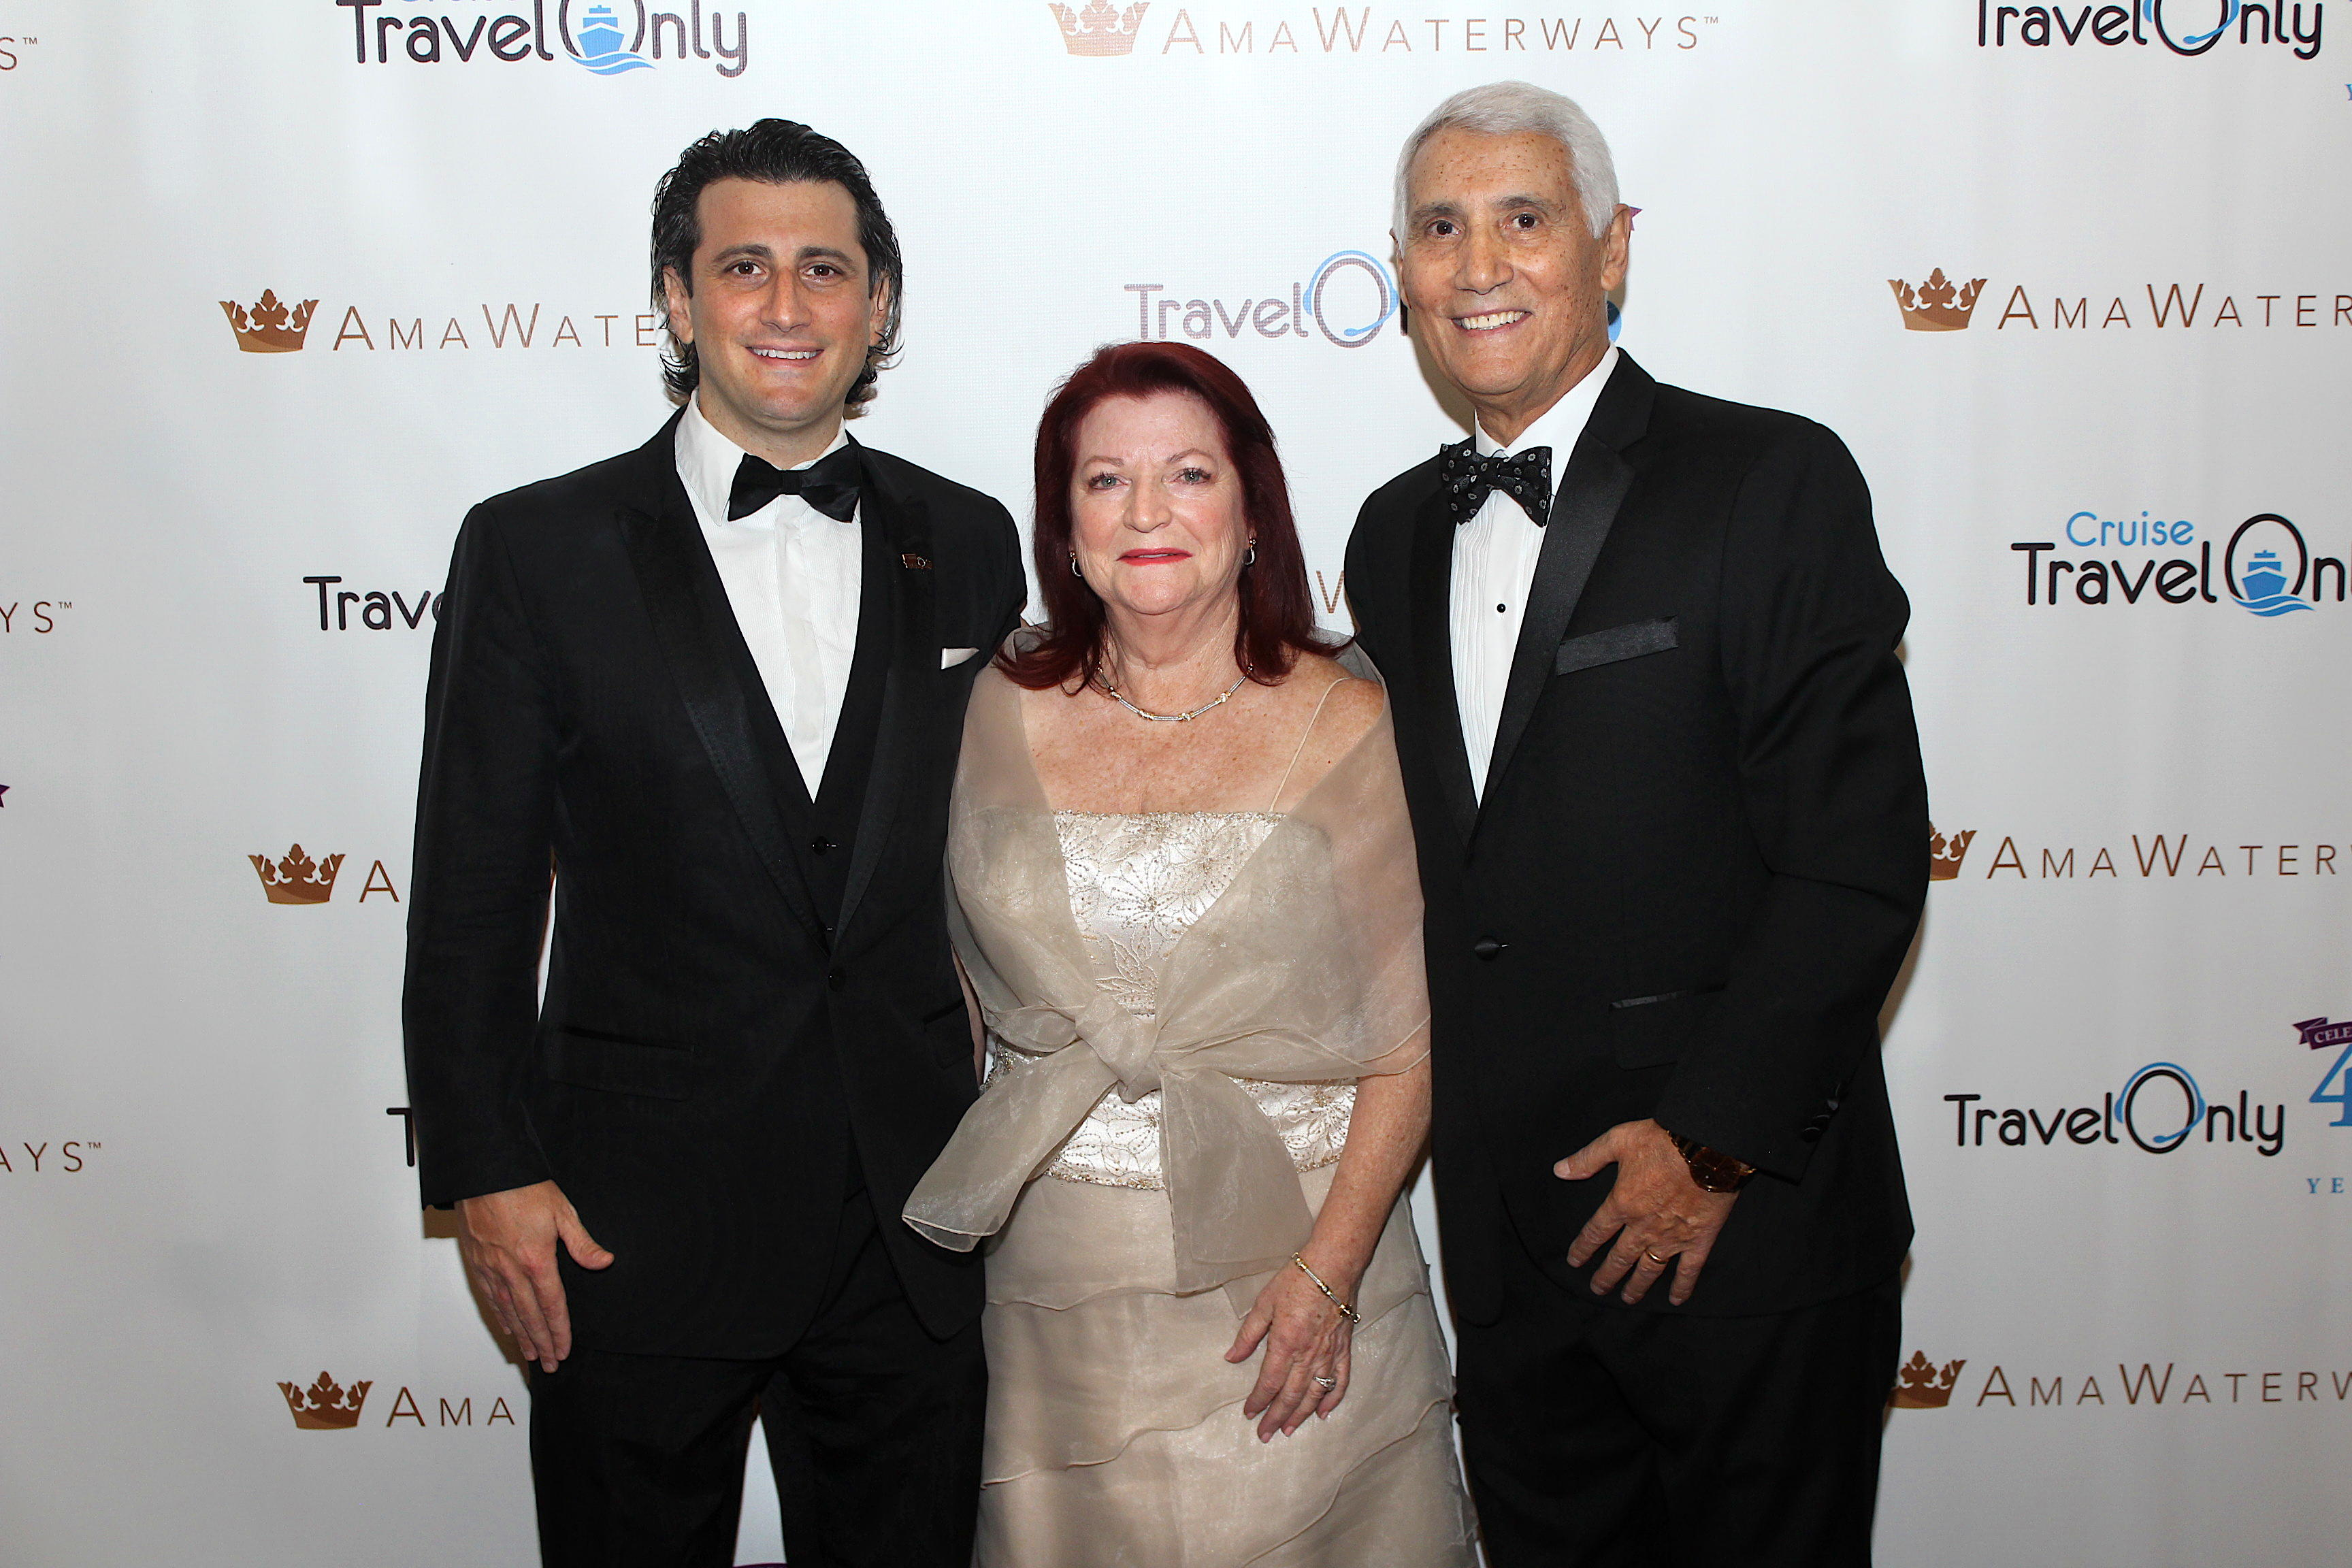 ALL IN THE FAMILY. From left (of TravelOnly): Gregory (president/CEO); Ann (CFO) and Patrick Luciani (Founder/Chairman).